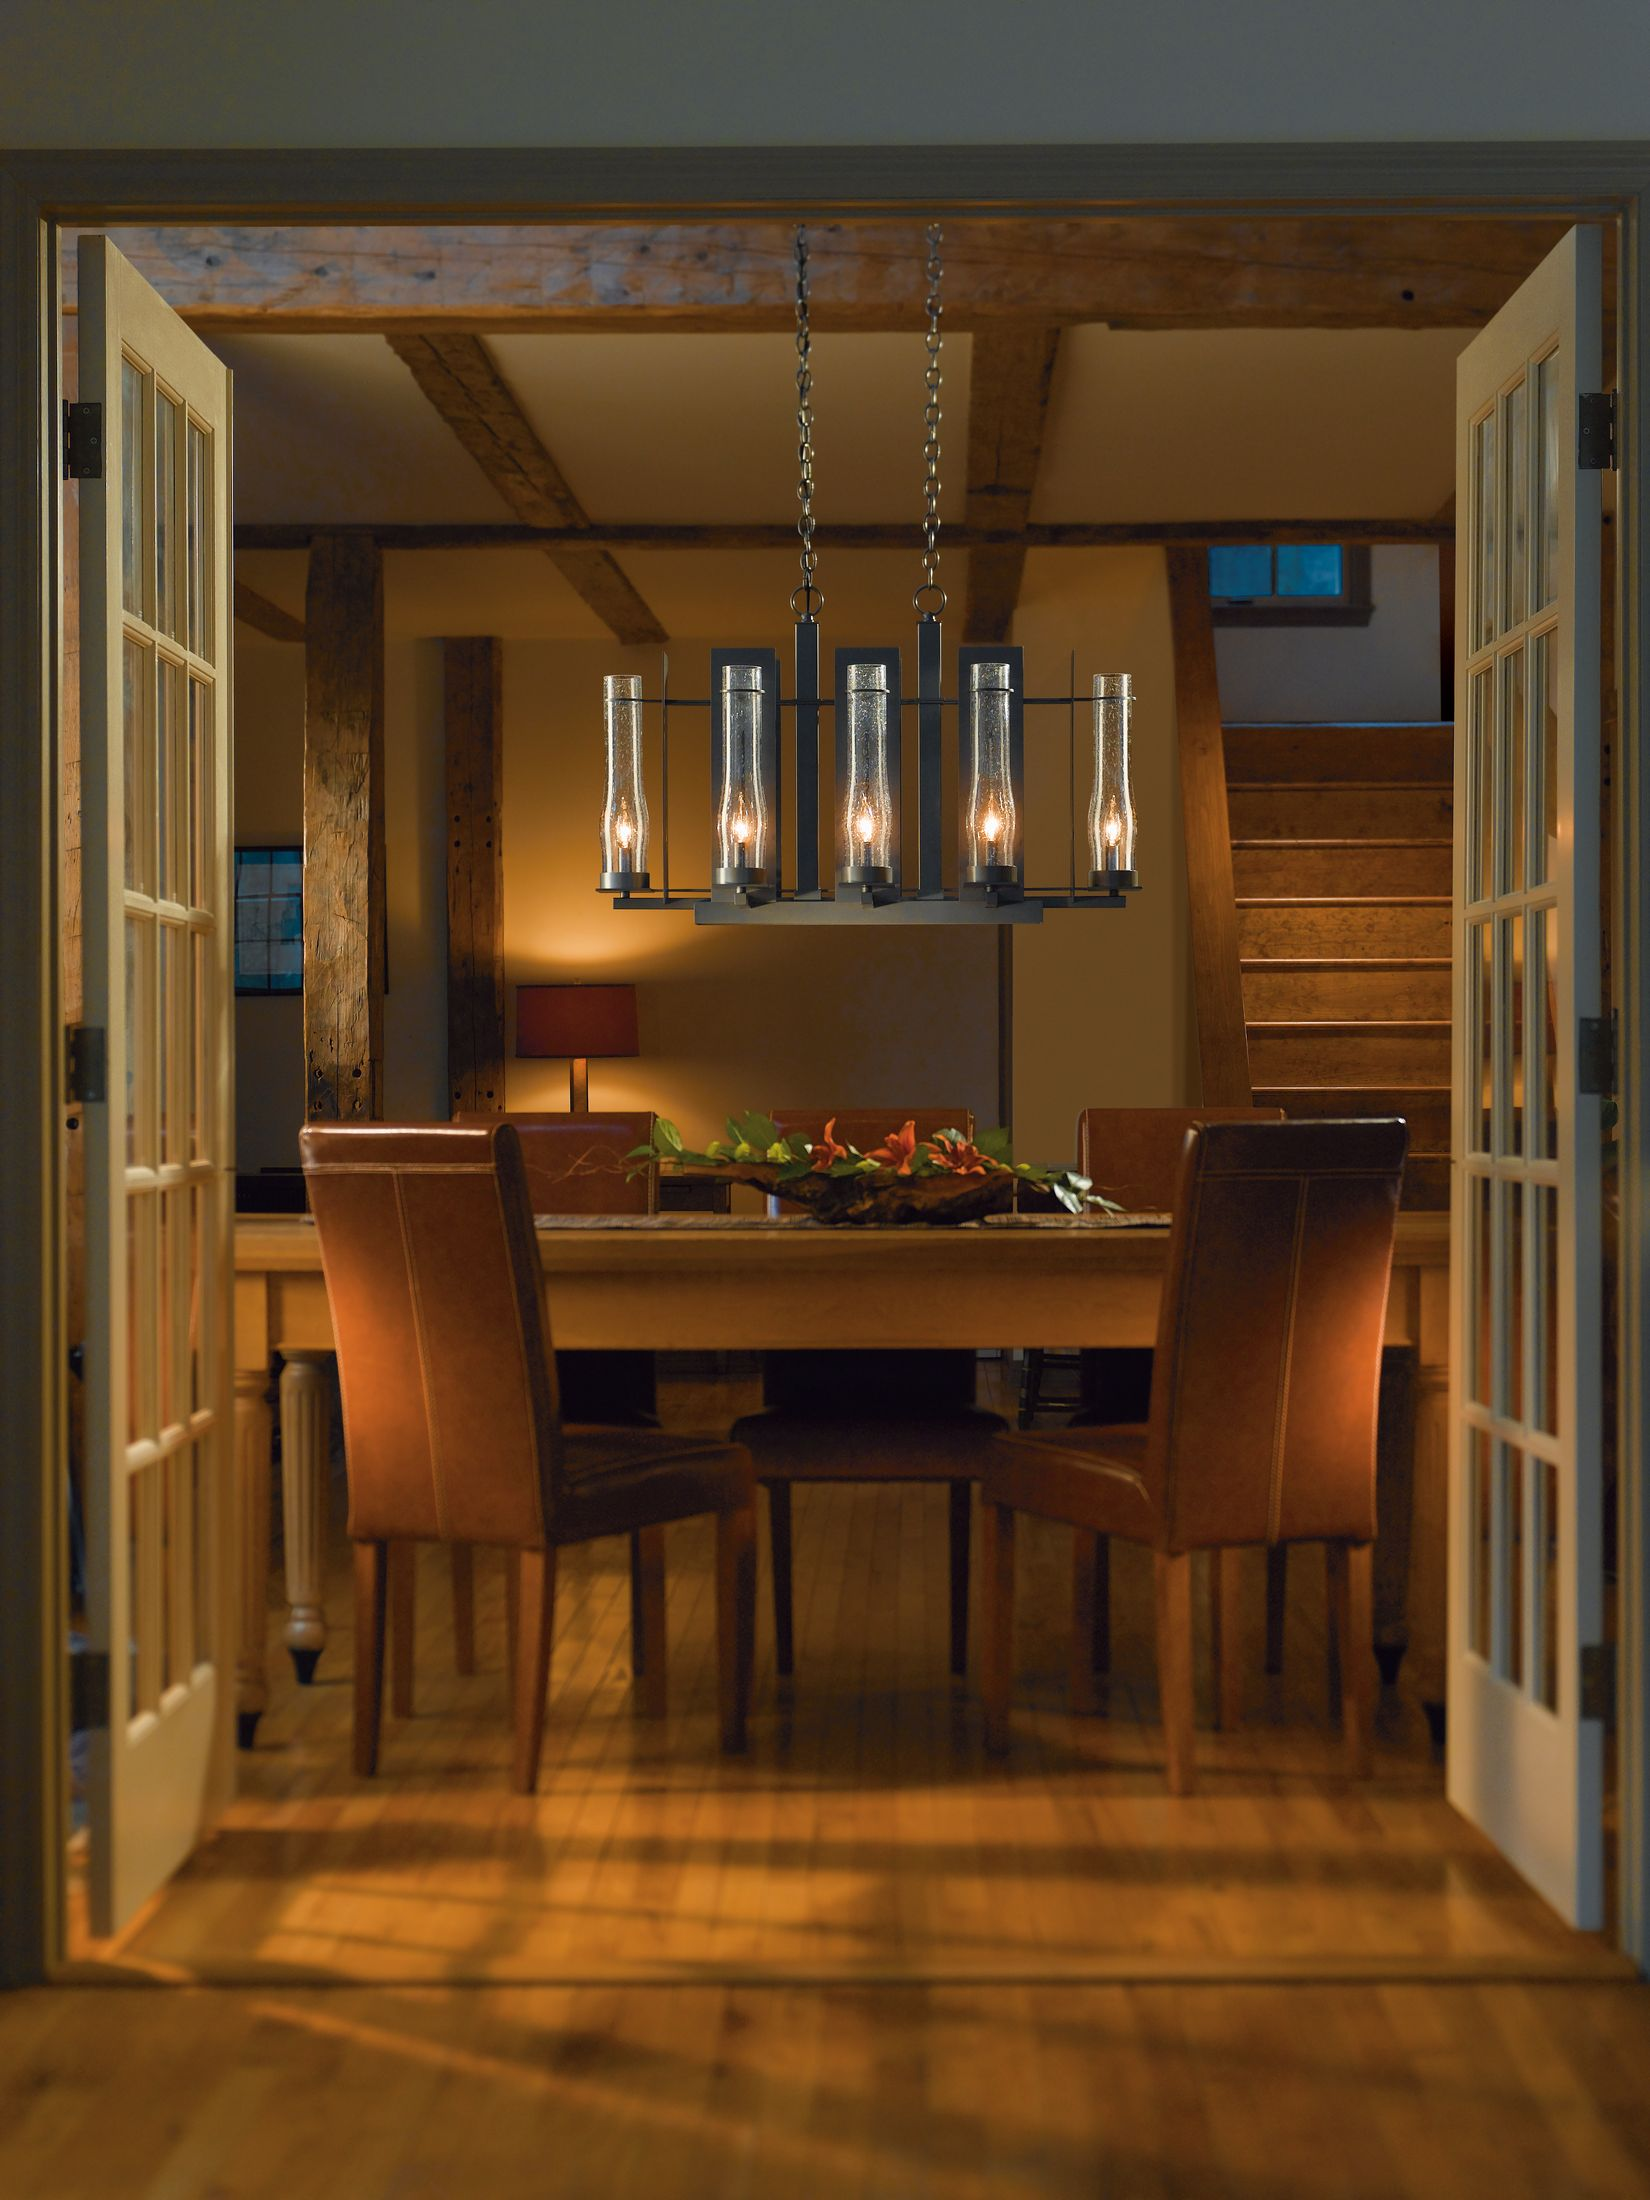 New town large 8 arm chandelier hubbardton forge aloadofball Image collections